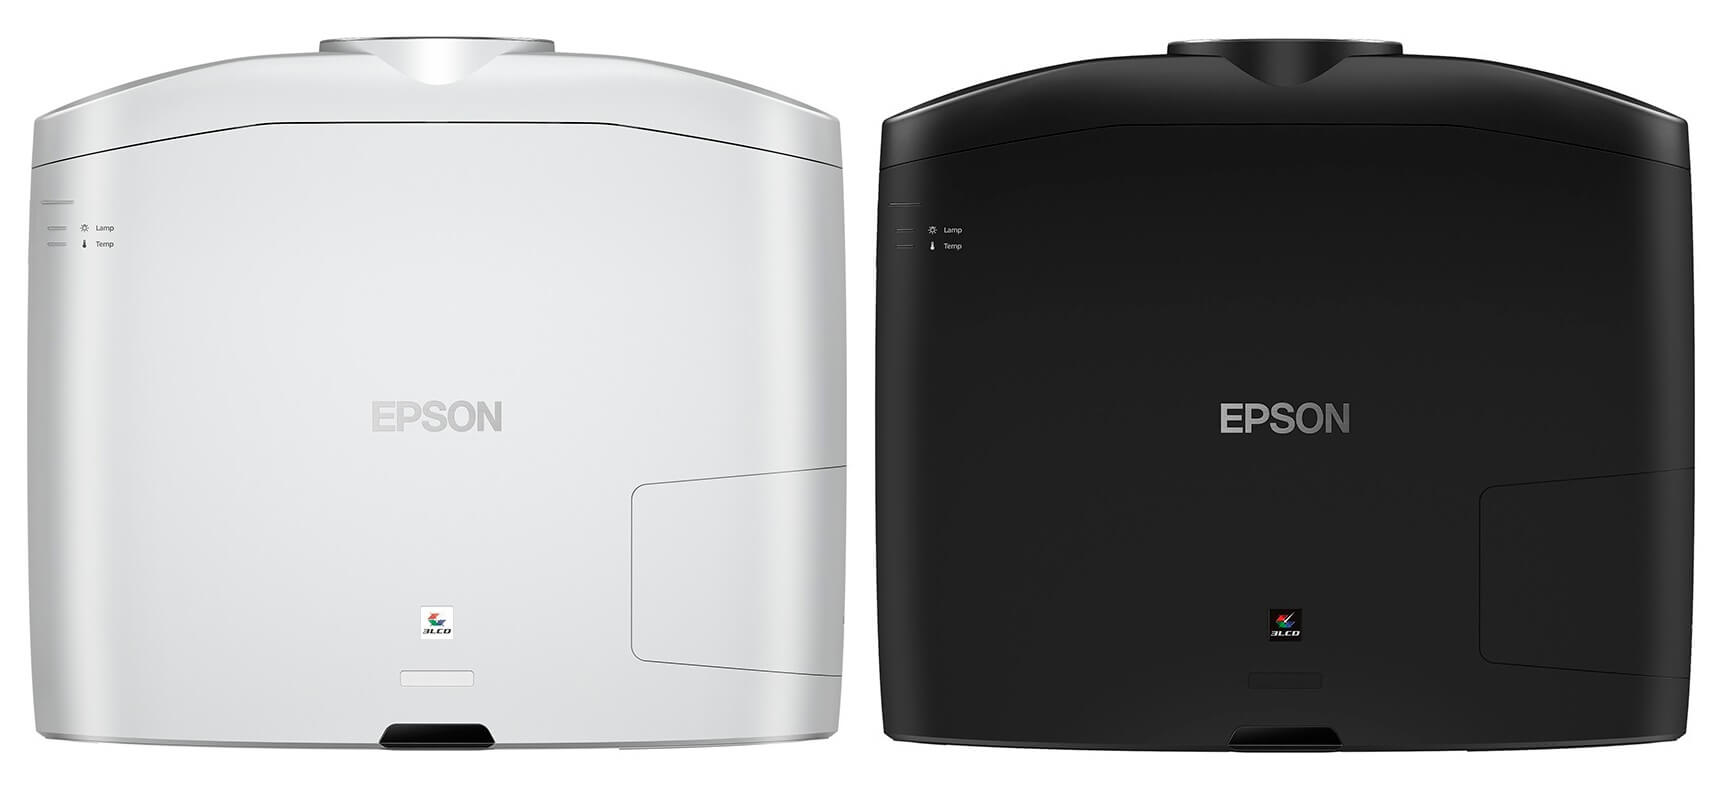 Epson_Top_Chassis